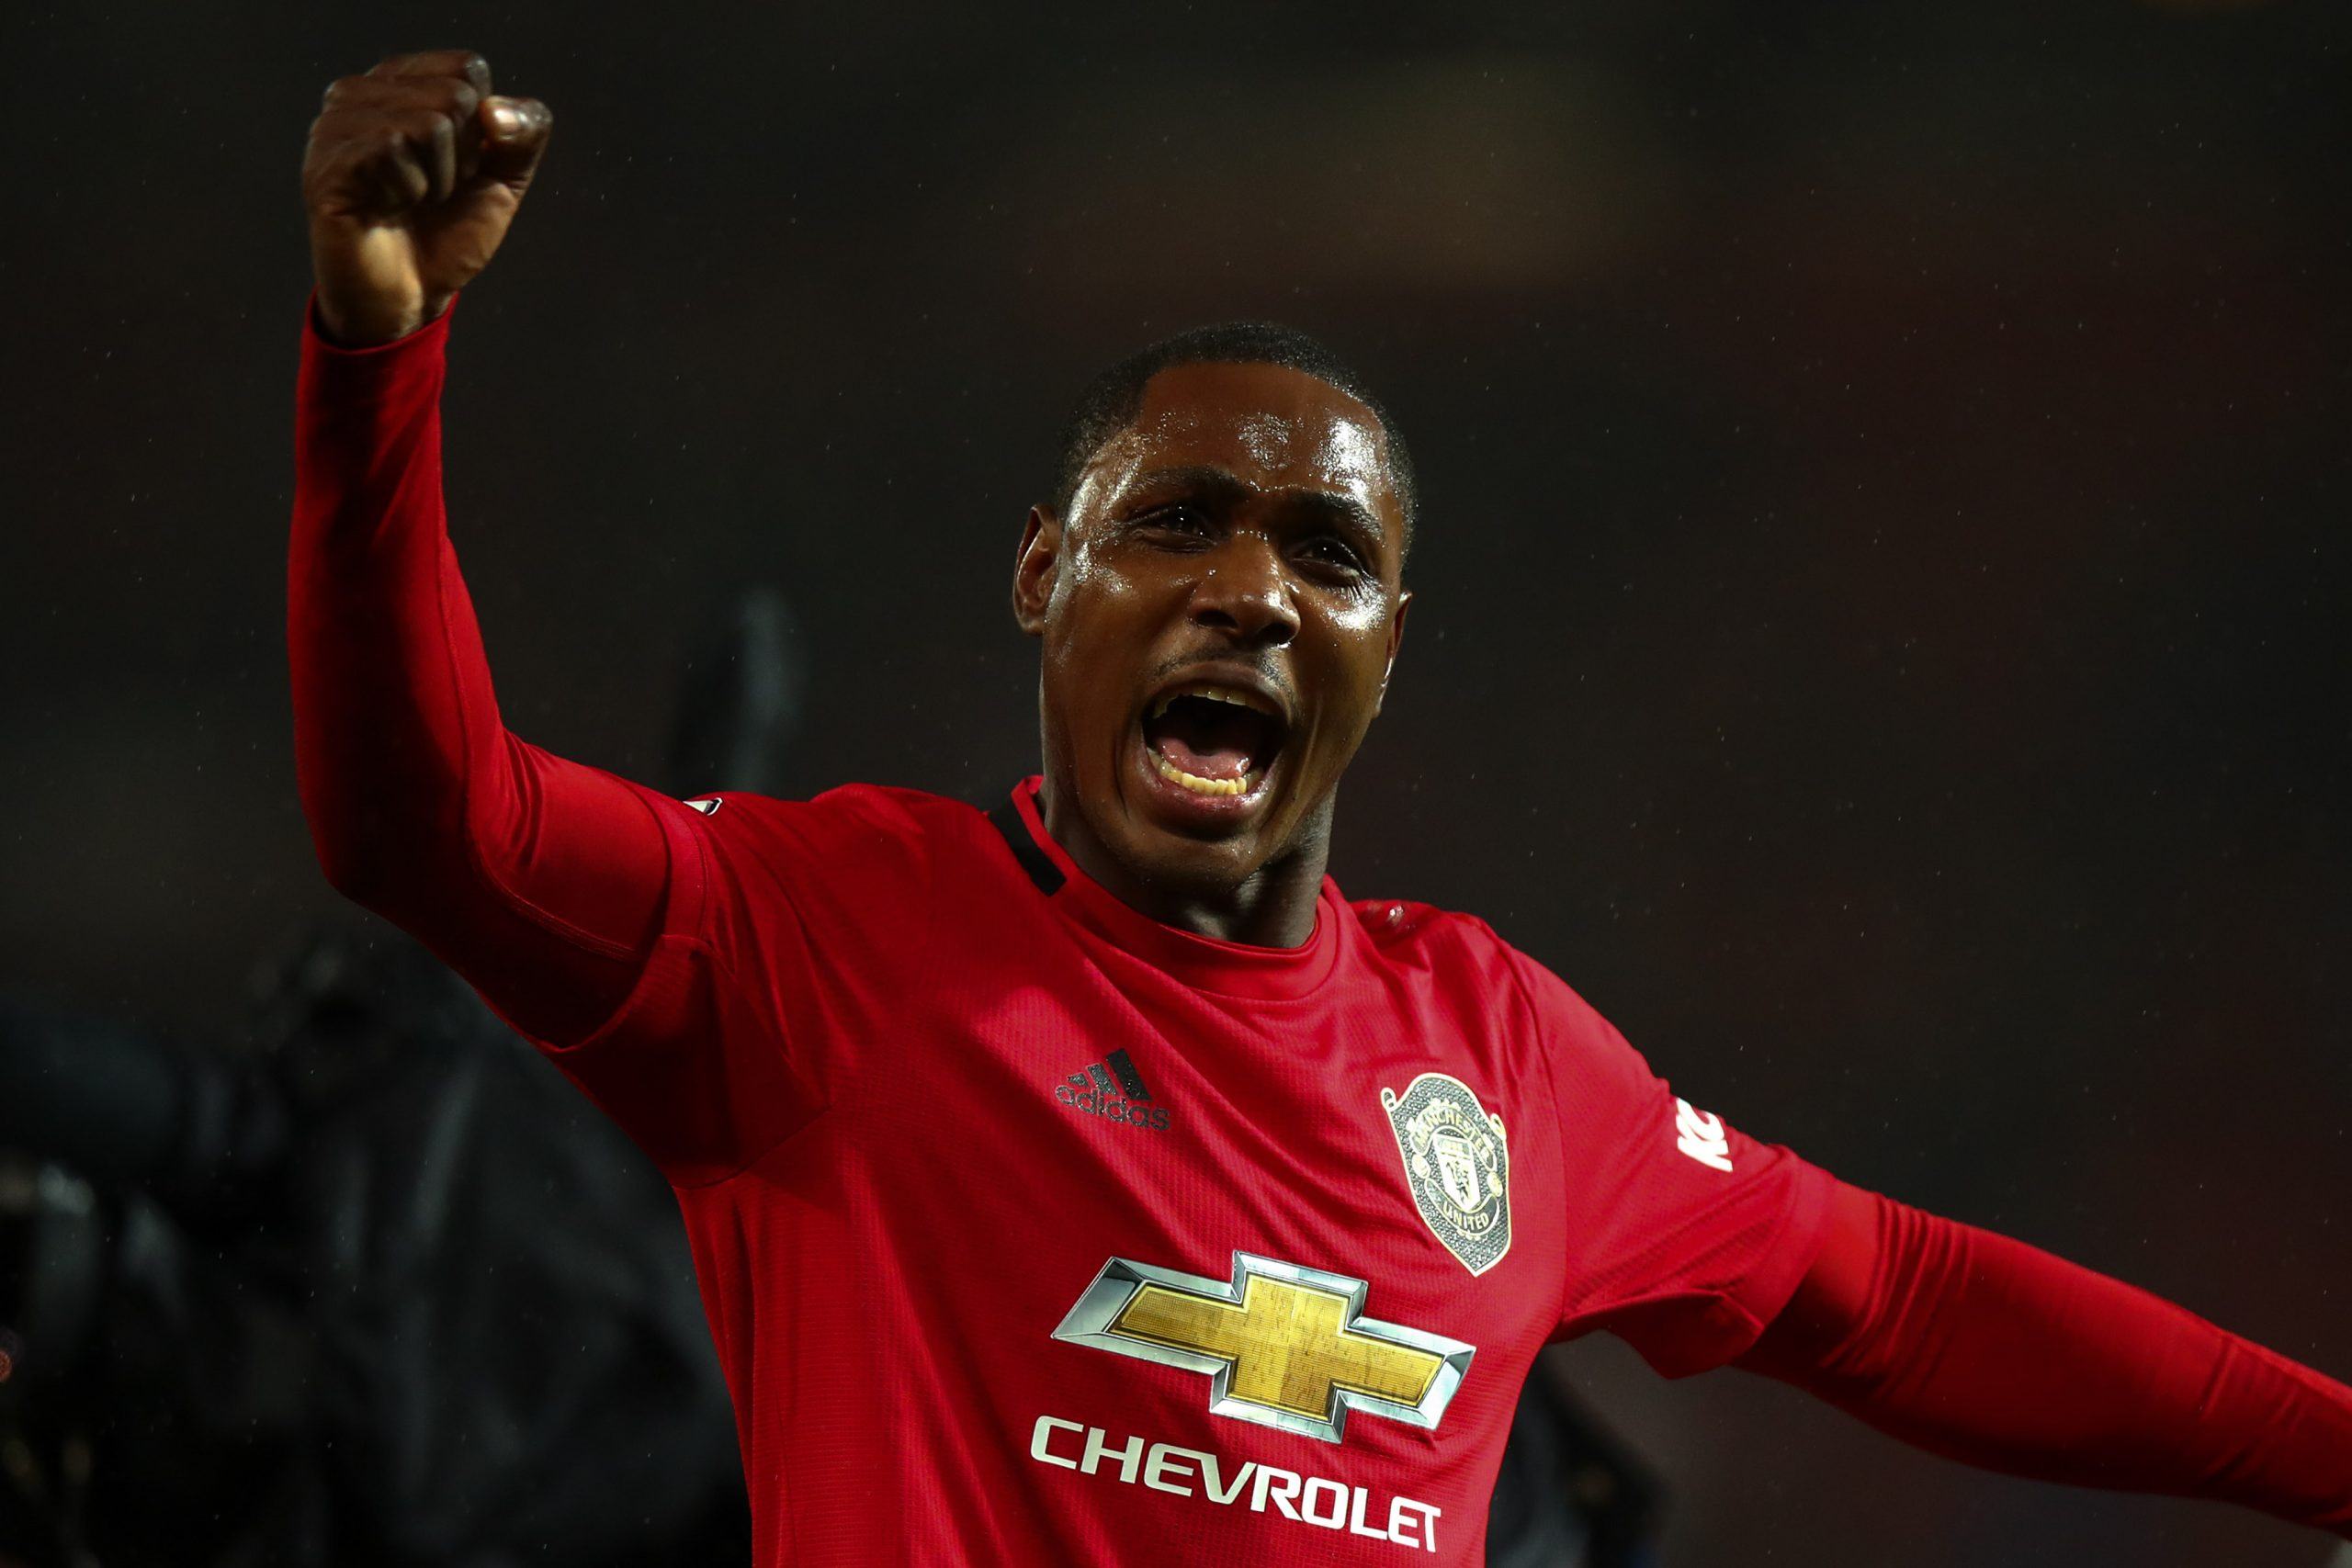 8 March 2020: Odion Ighalo celebrates Manchester United's 2-0 victory over Manchester City in the Premier League match at Old Trafford. (Photograph by Robbie Jay Barratt/ AMA/ Getty Images)